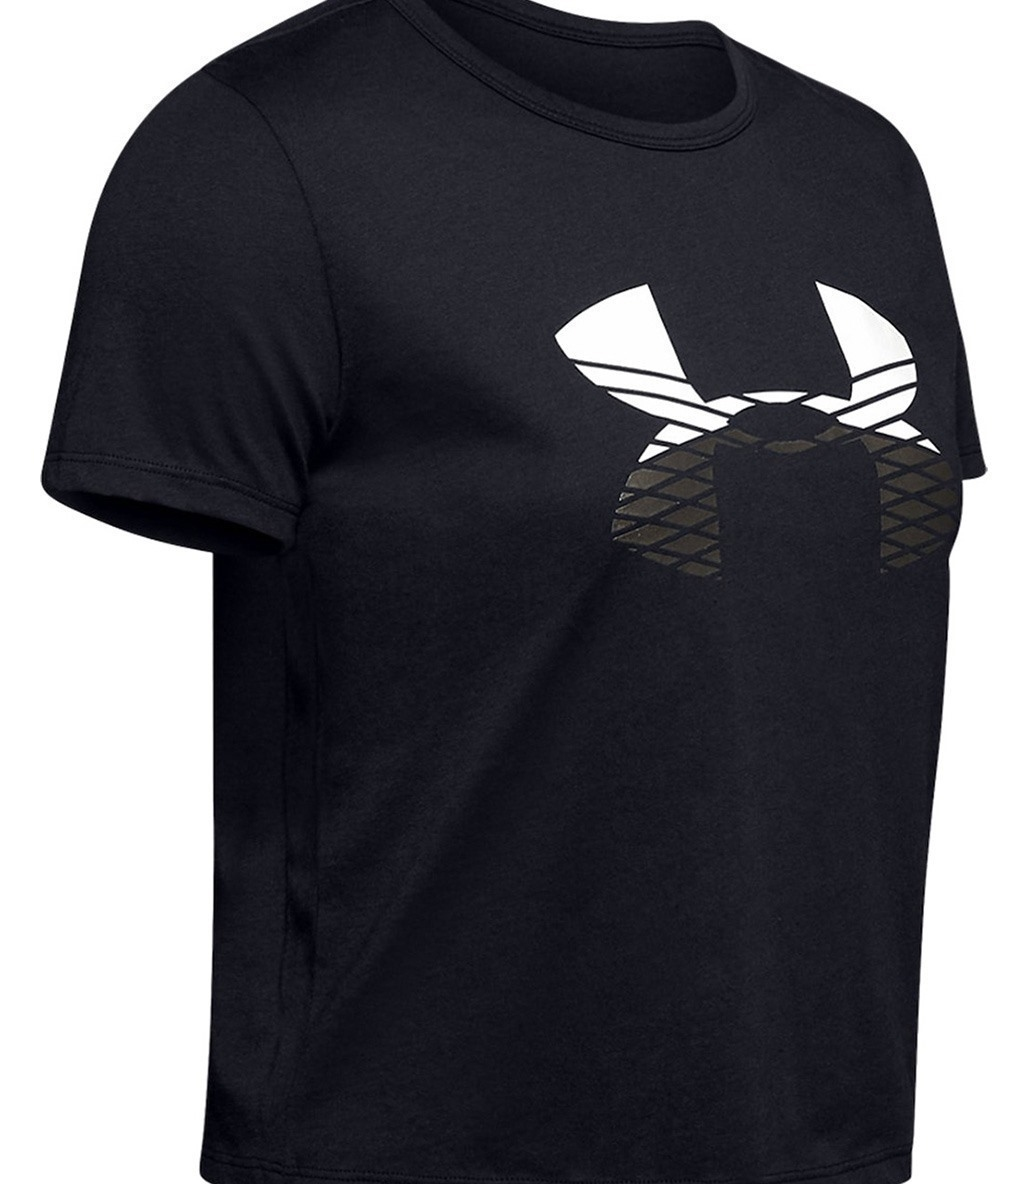 Under Armour Graphic Baby T-Shirt Siyah